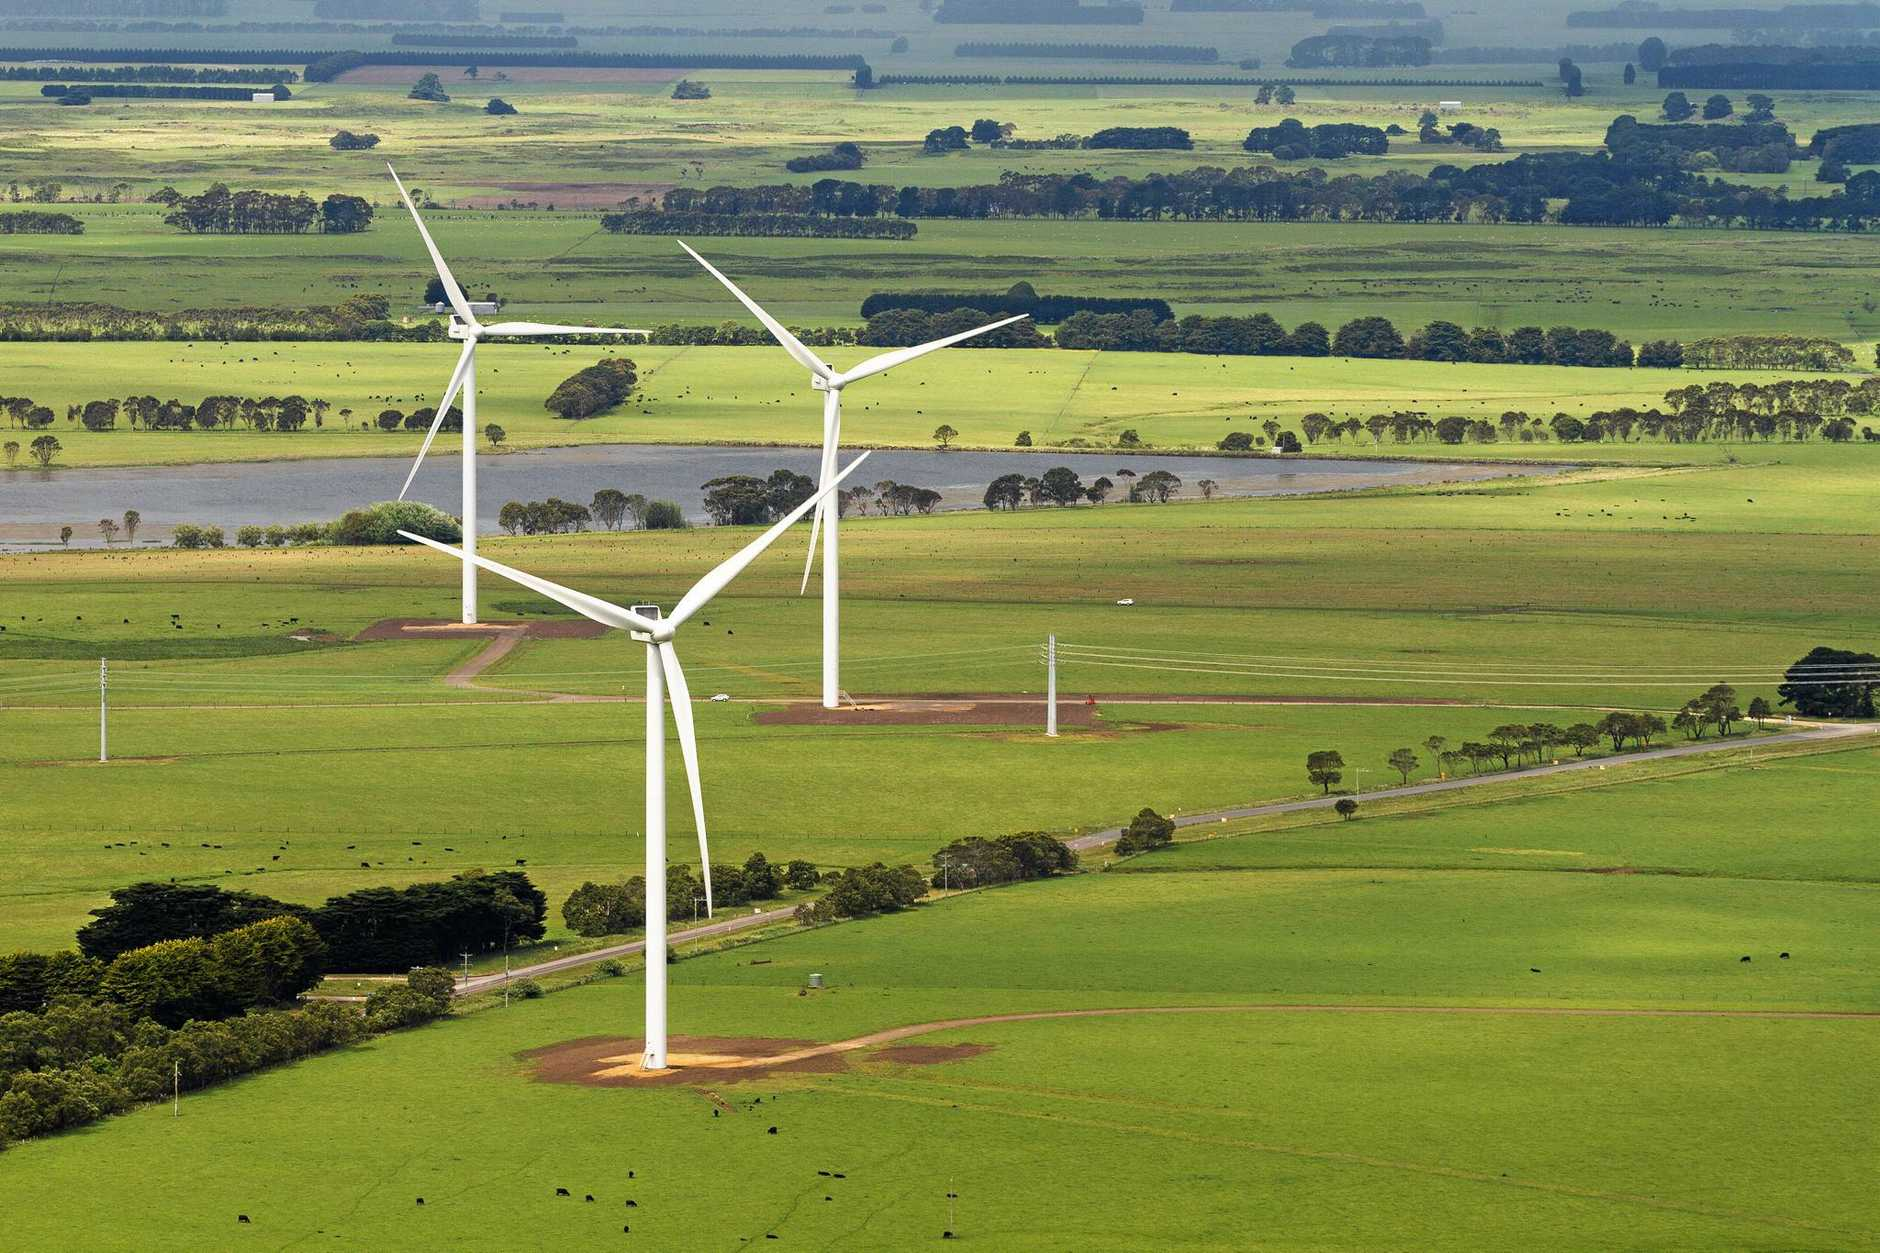 South Australia is heavily reliant on wind power.